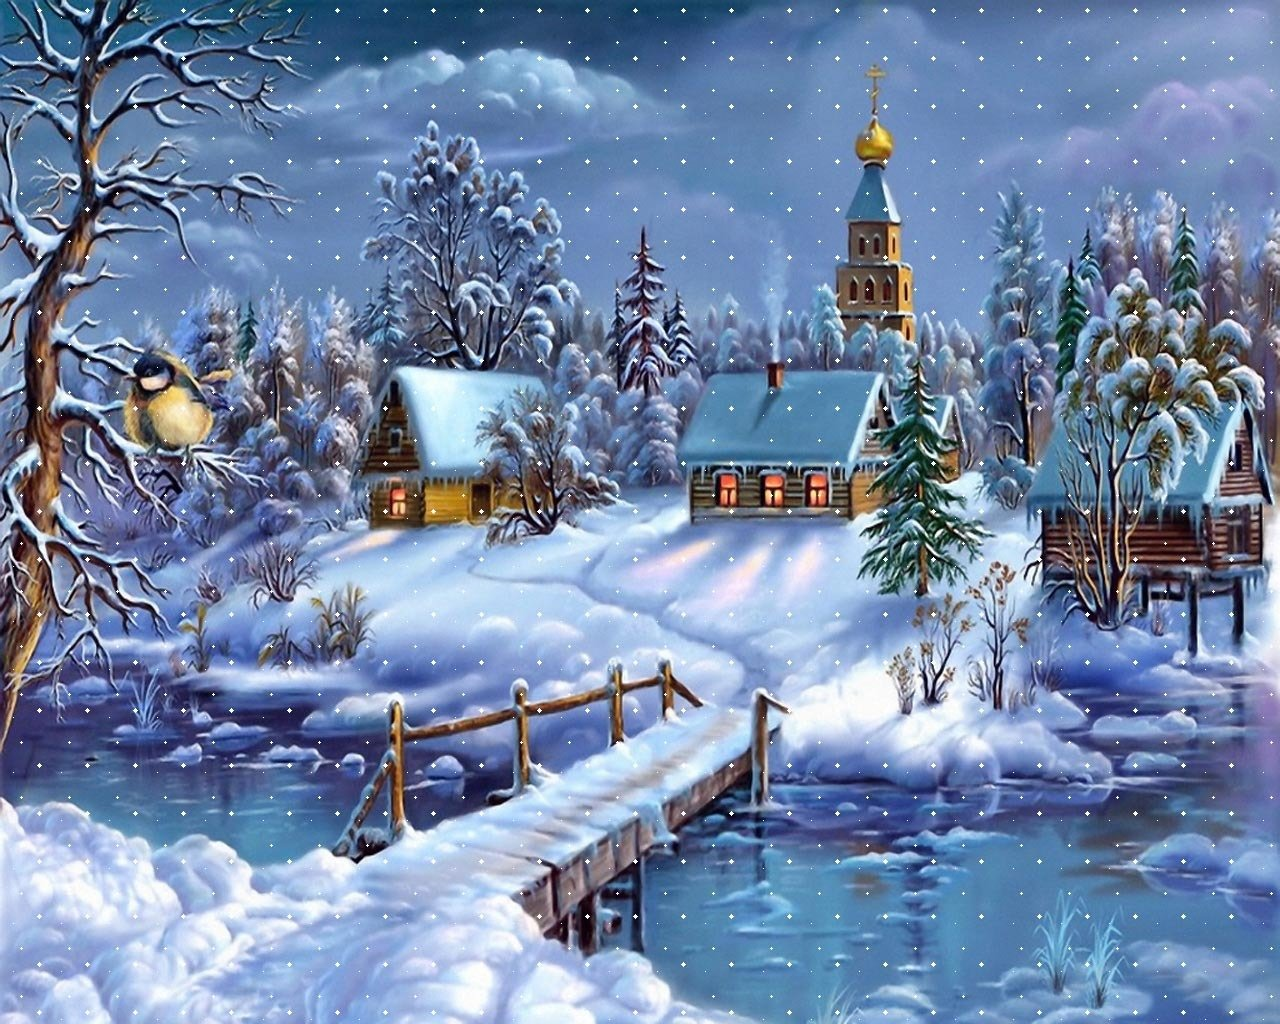 desktop wallpaper winter scenes   wwwwallpapers in hdcom 1280x1024